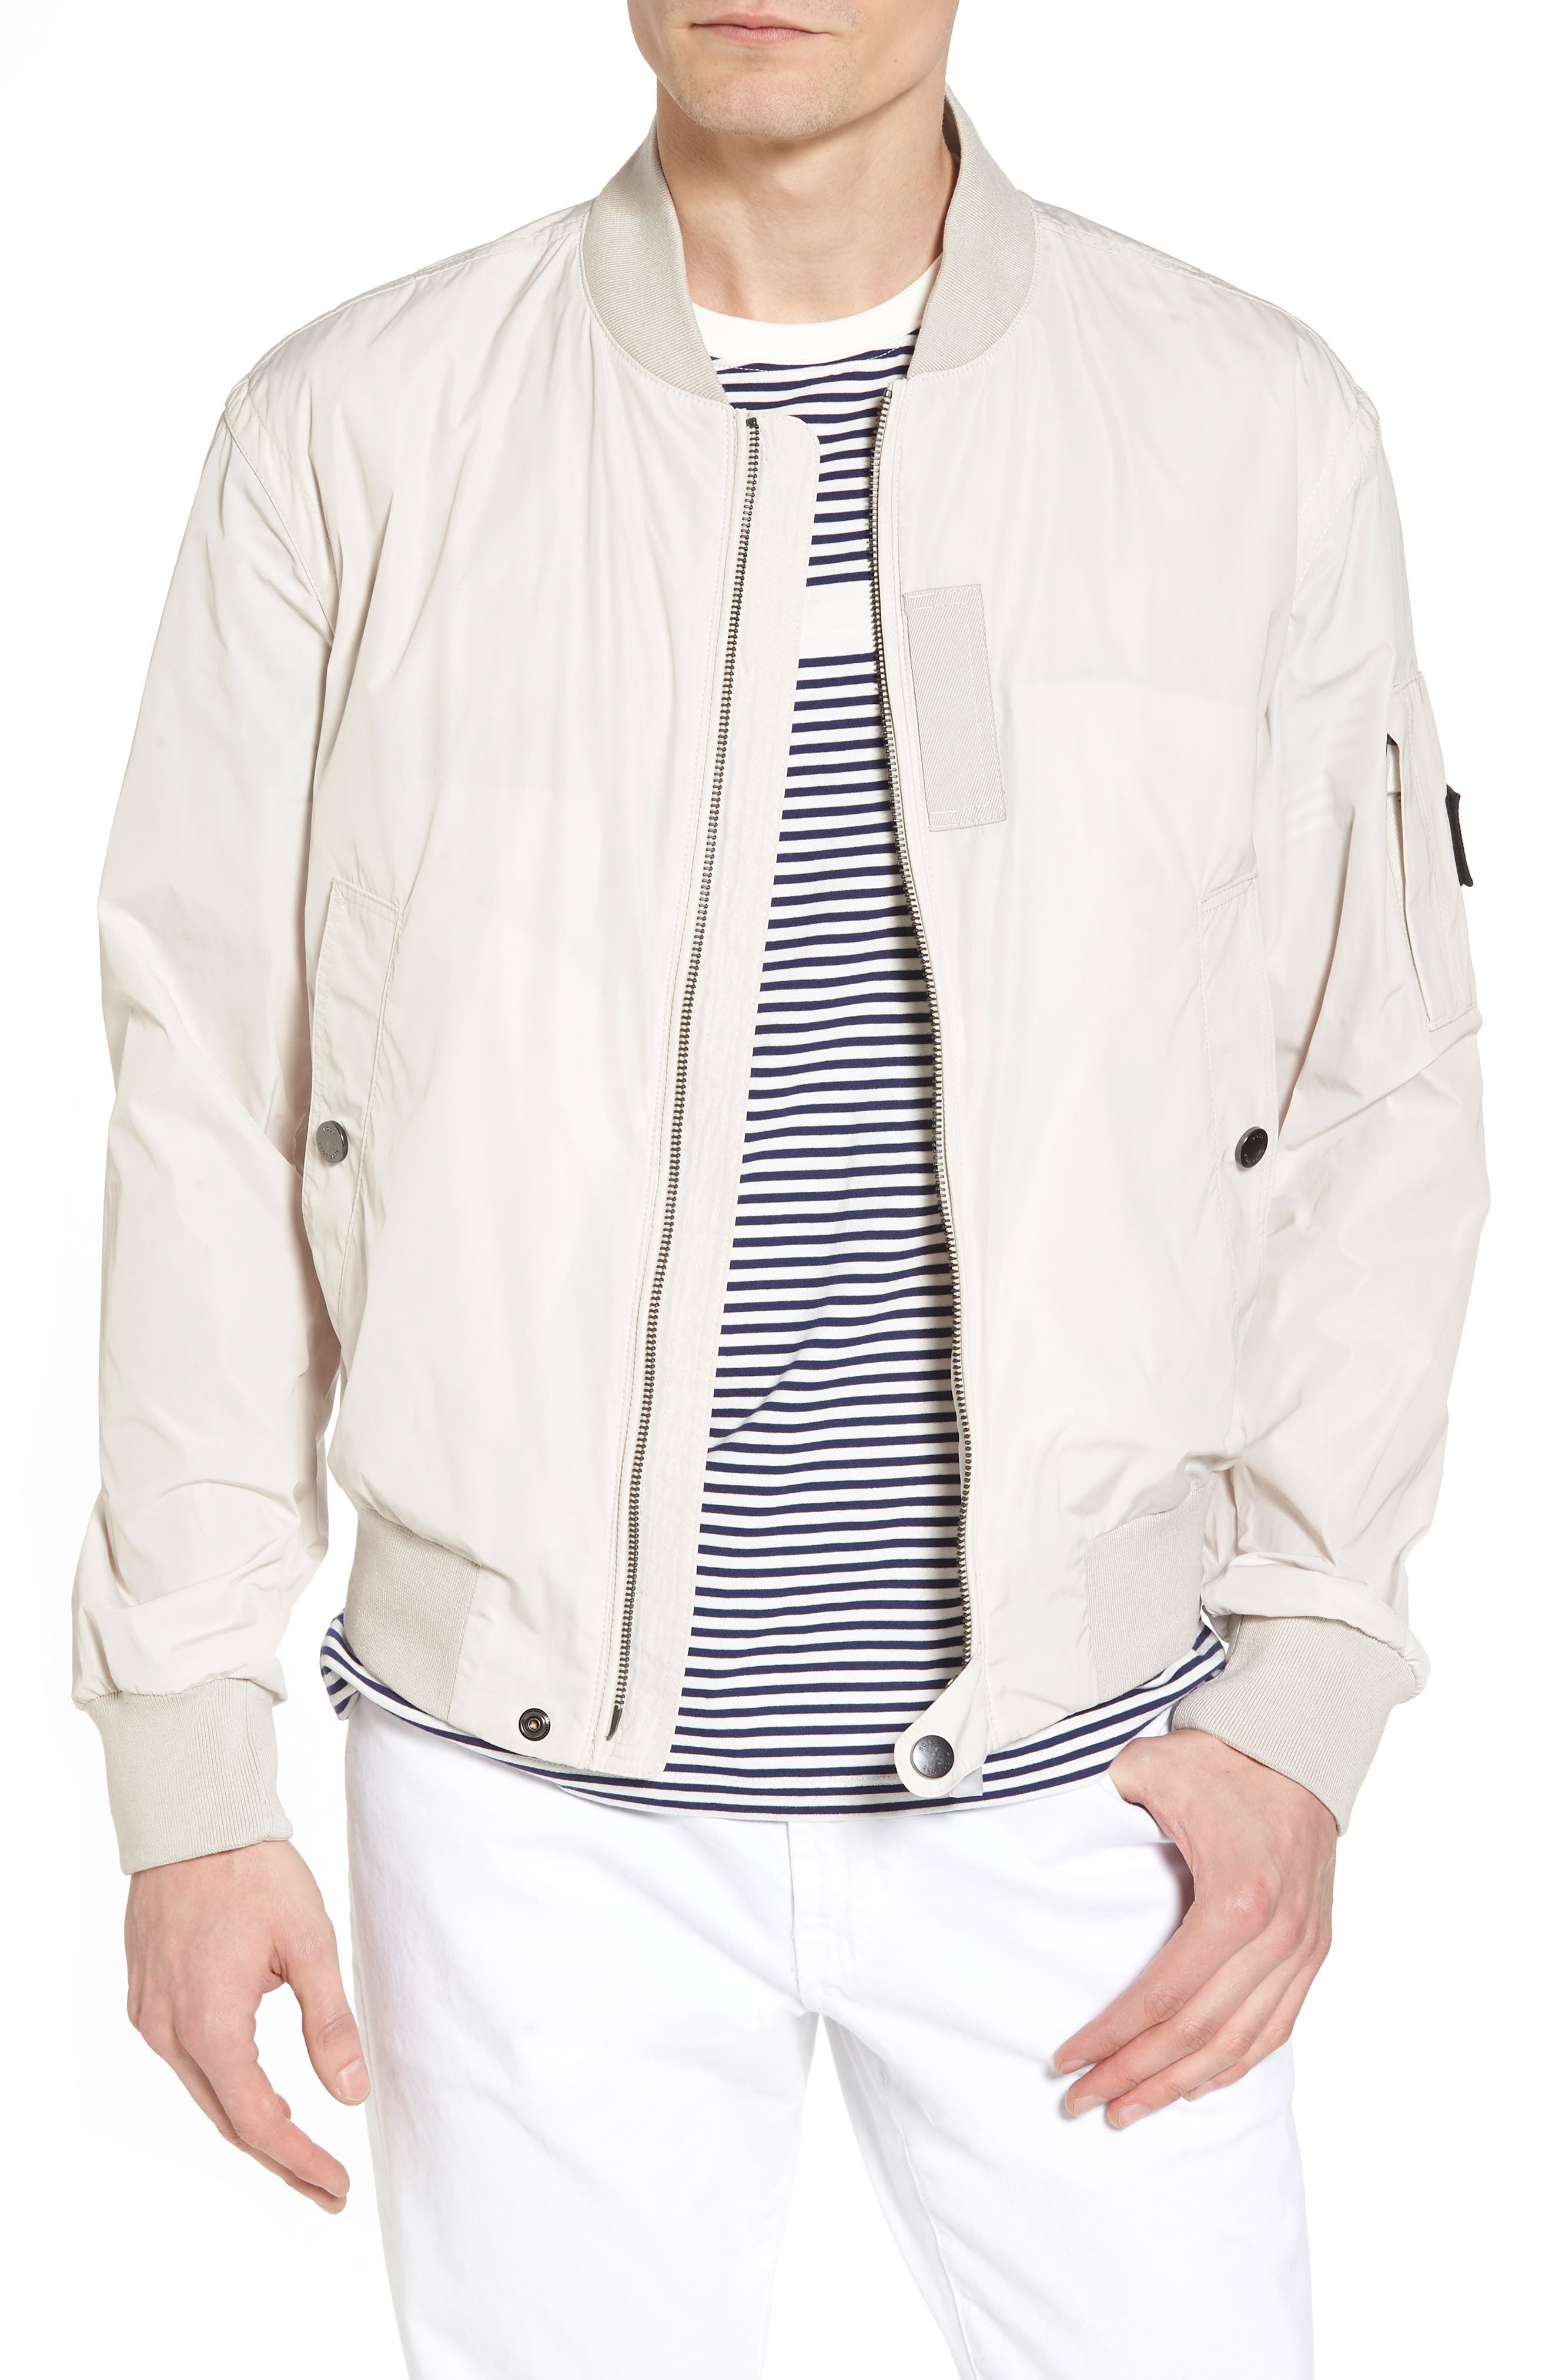 Regular Fit Bomber Jacket,                         Main,                         color, 102